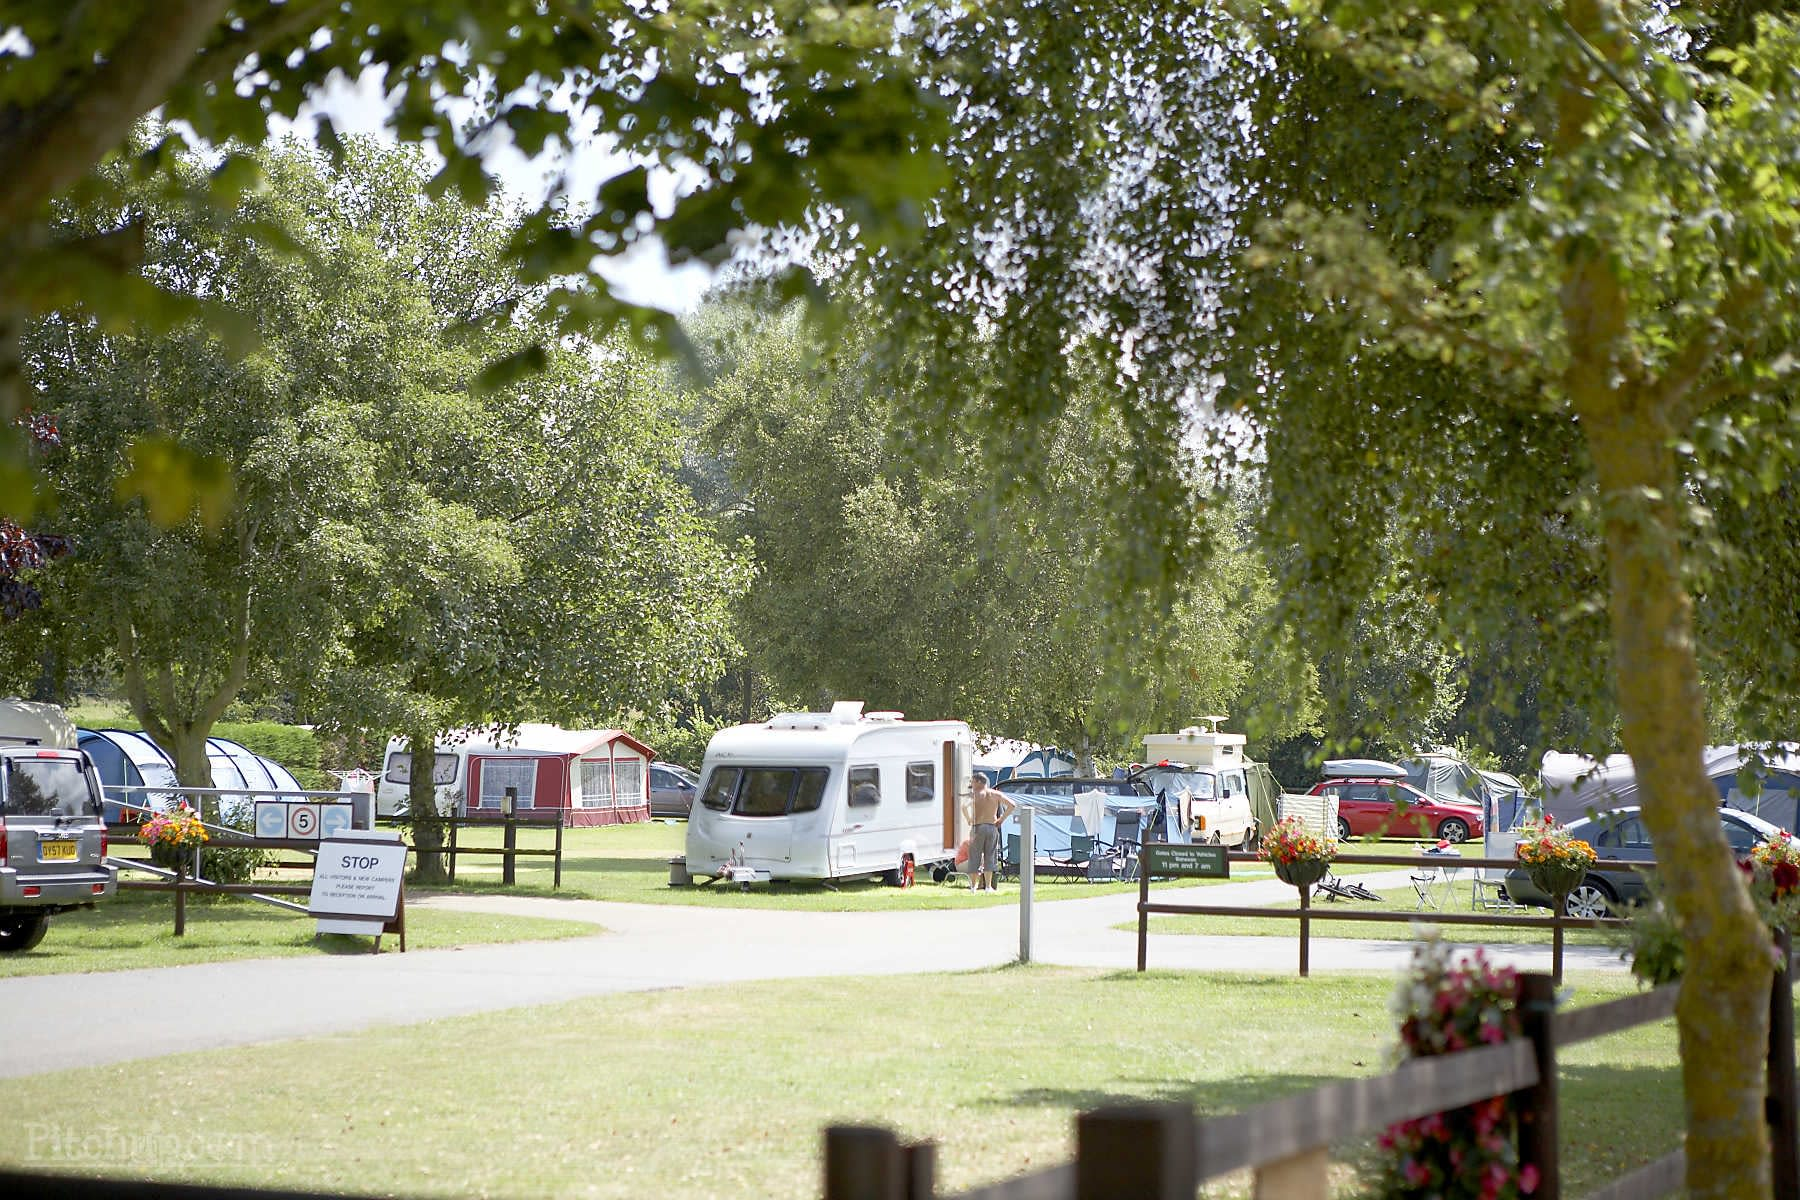 Teversal - Camping and Caravanning Club Site - The Camping